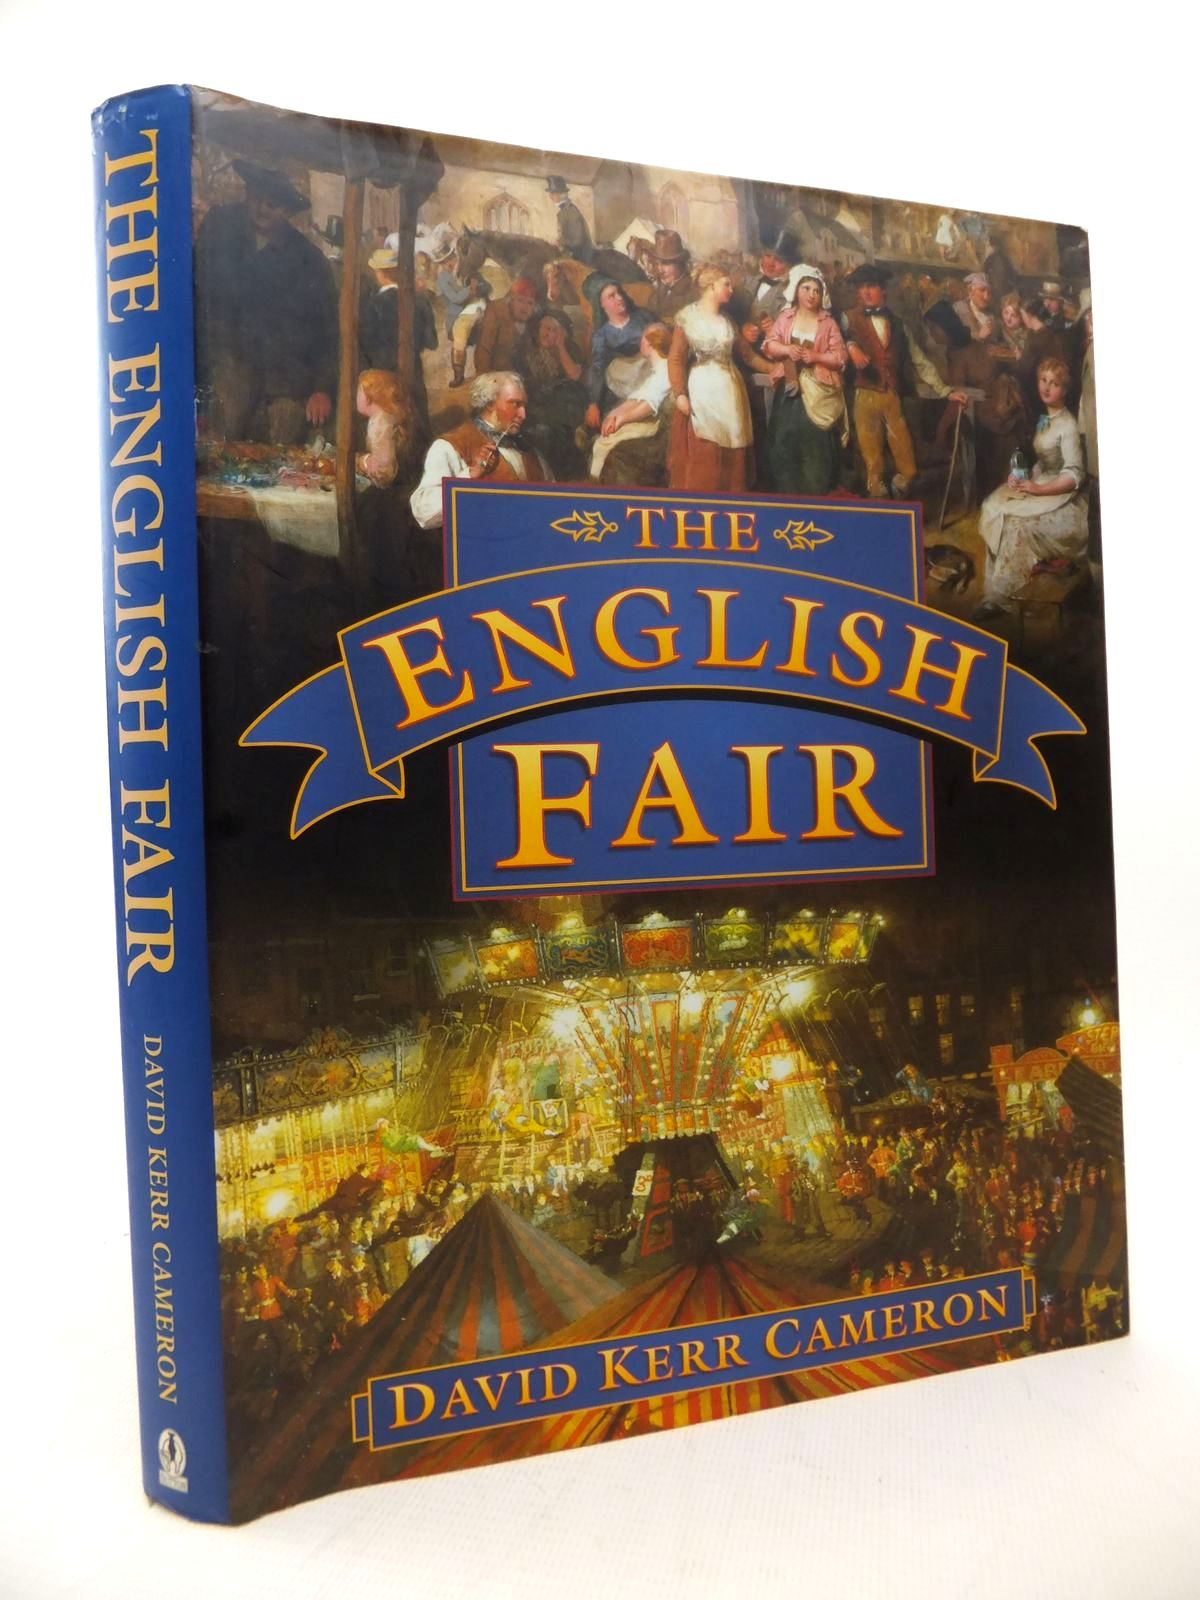 Photo of THE ENGLISH FAIR written by Cameron, David Kerr published by Sutton Publishing (STOCK CODE: 1814125)  for sale by Stella & Rose's Books